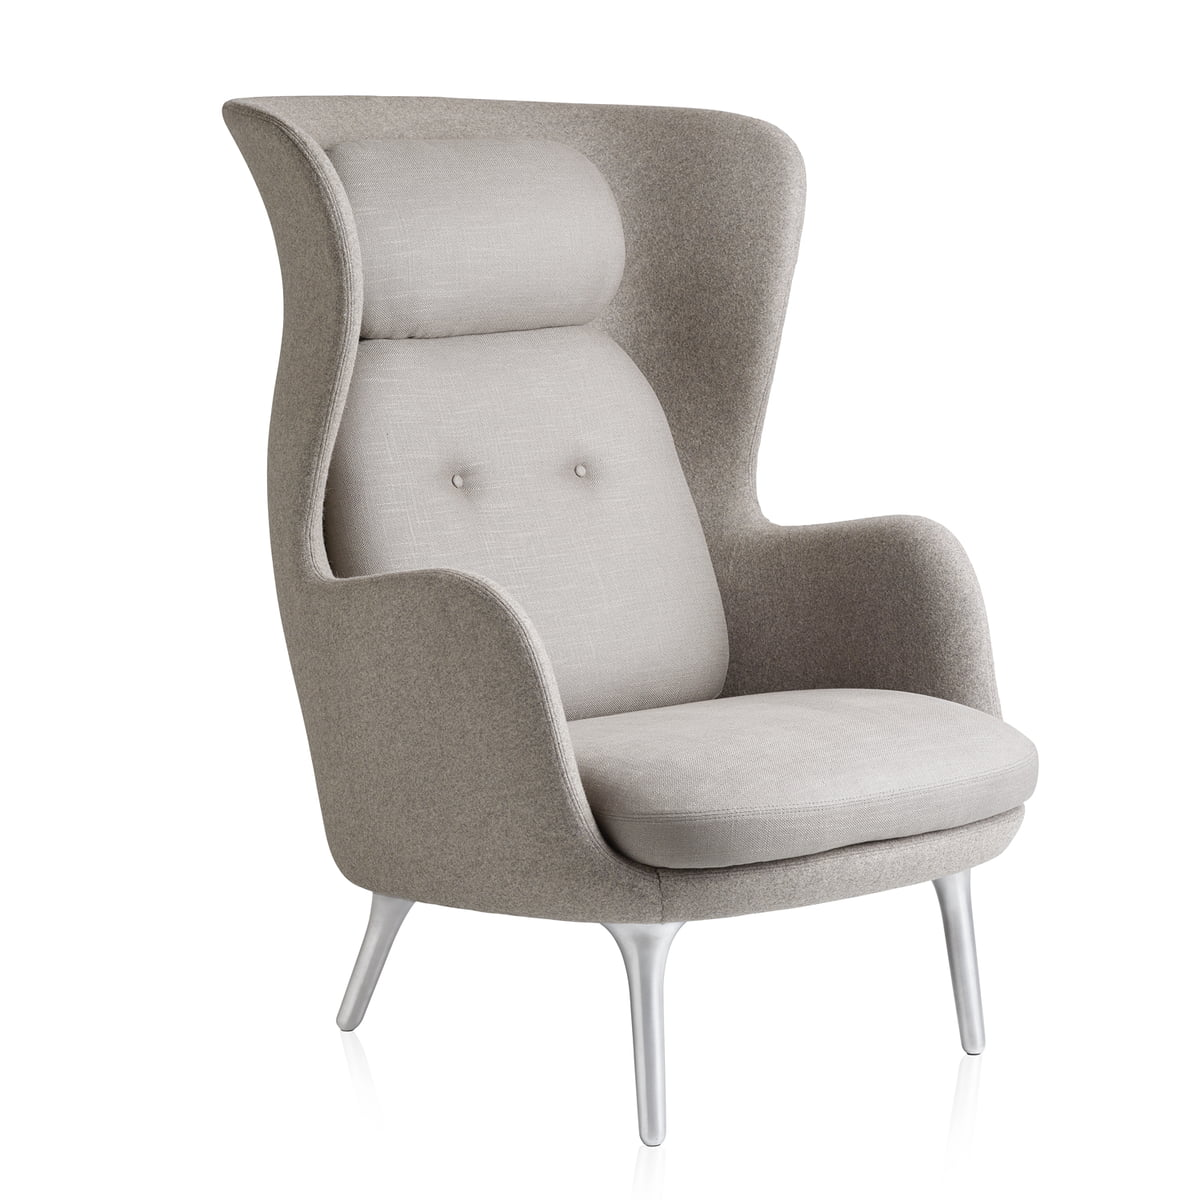 sessel taupe, ro armchair by fritz hansen | connox, Design ideen